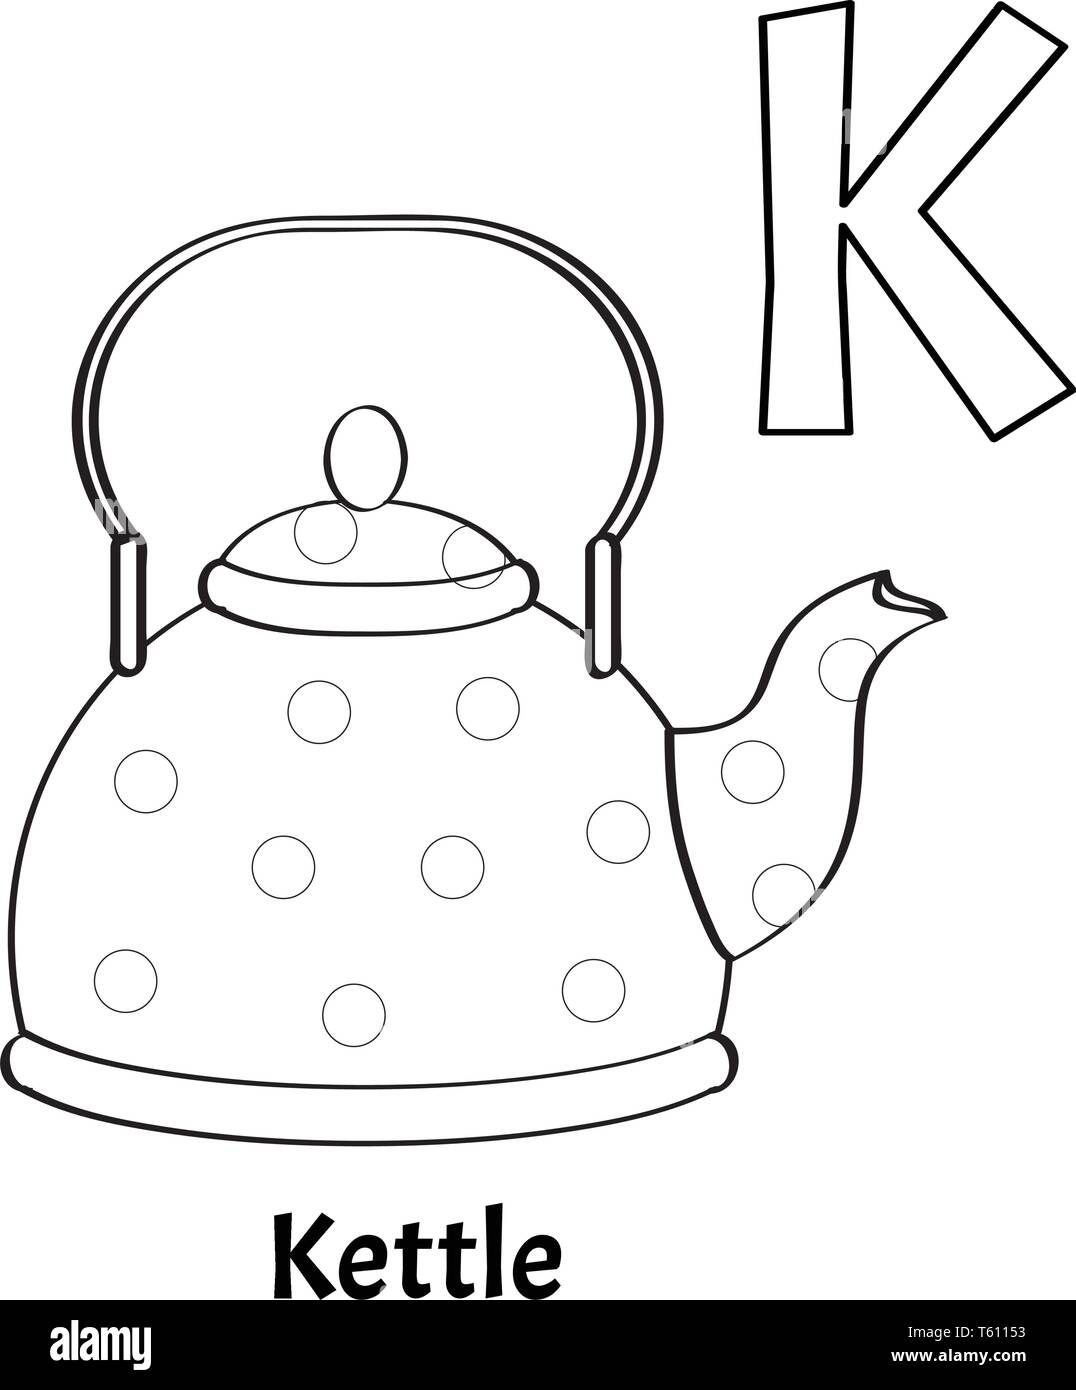 Vector Alphabet Letter K Coloring Page Kettle Stock